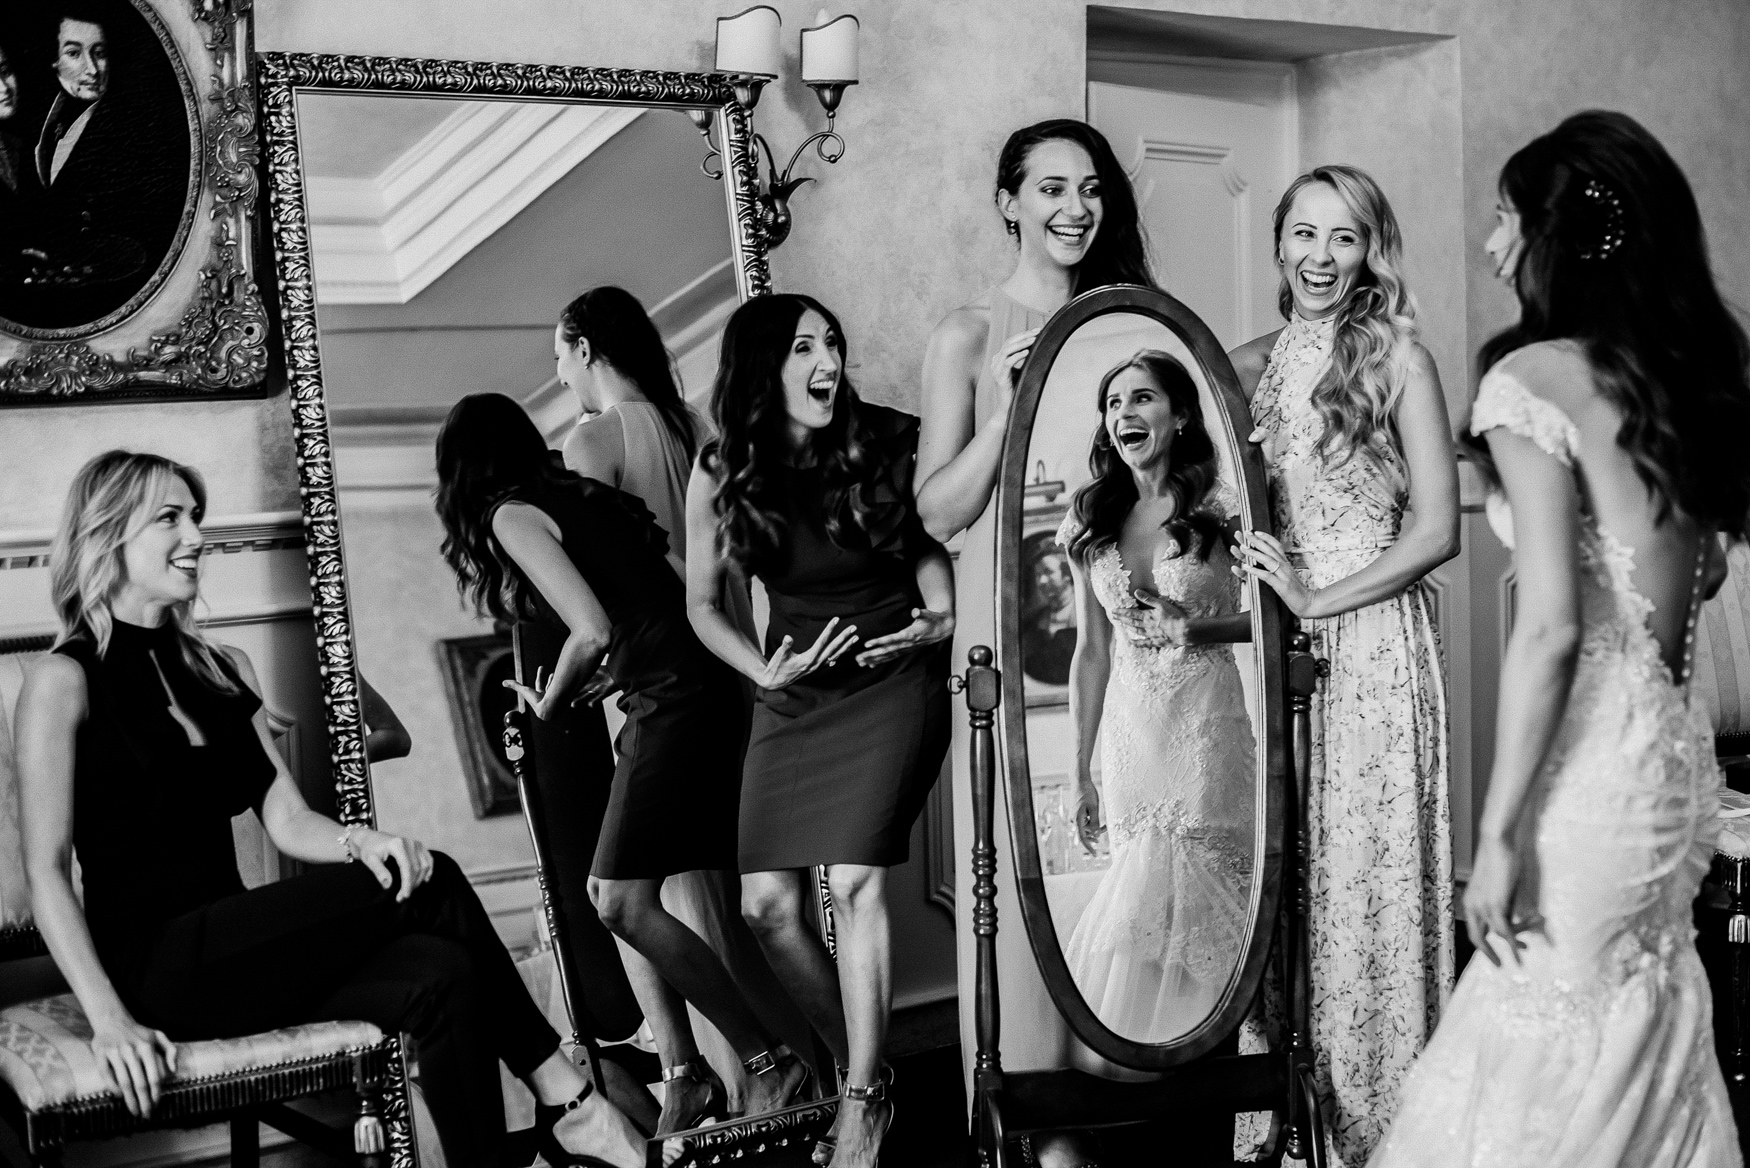 bestof2017_048 bride and bridesmaids - vip wedding photographer.jpg